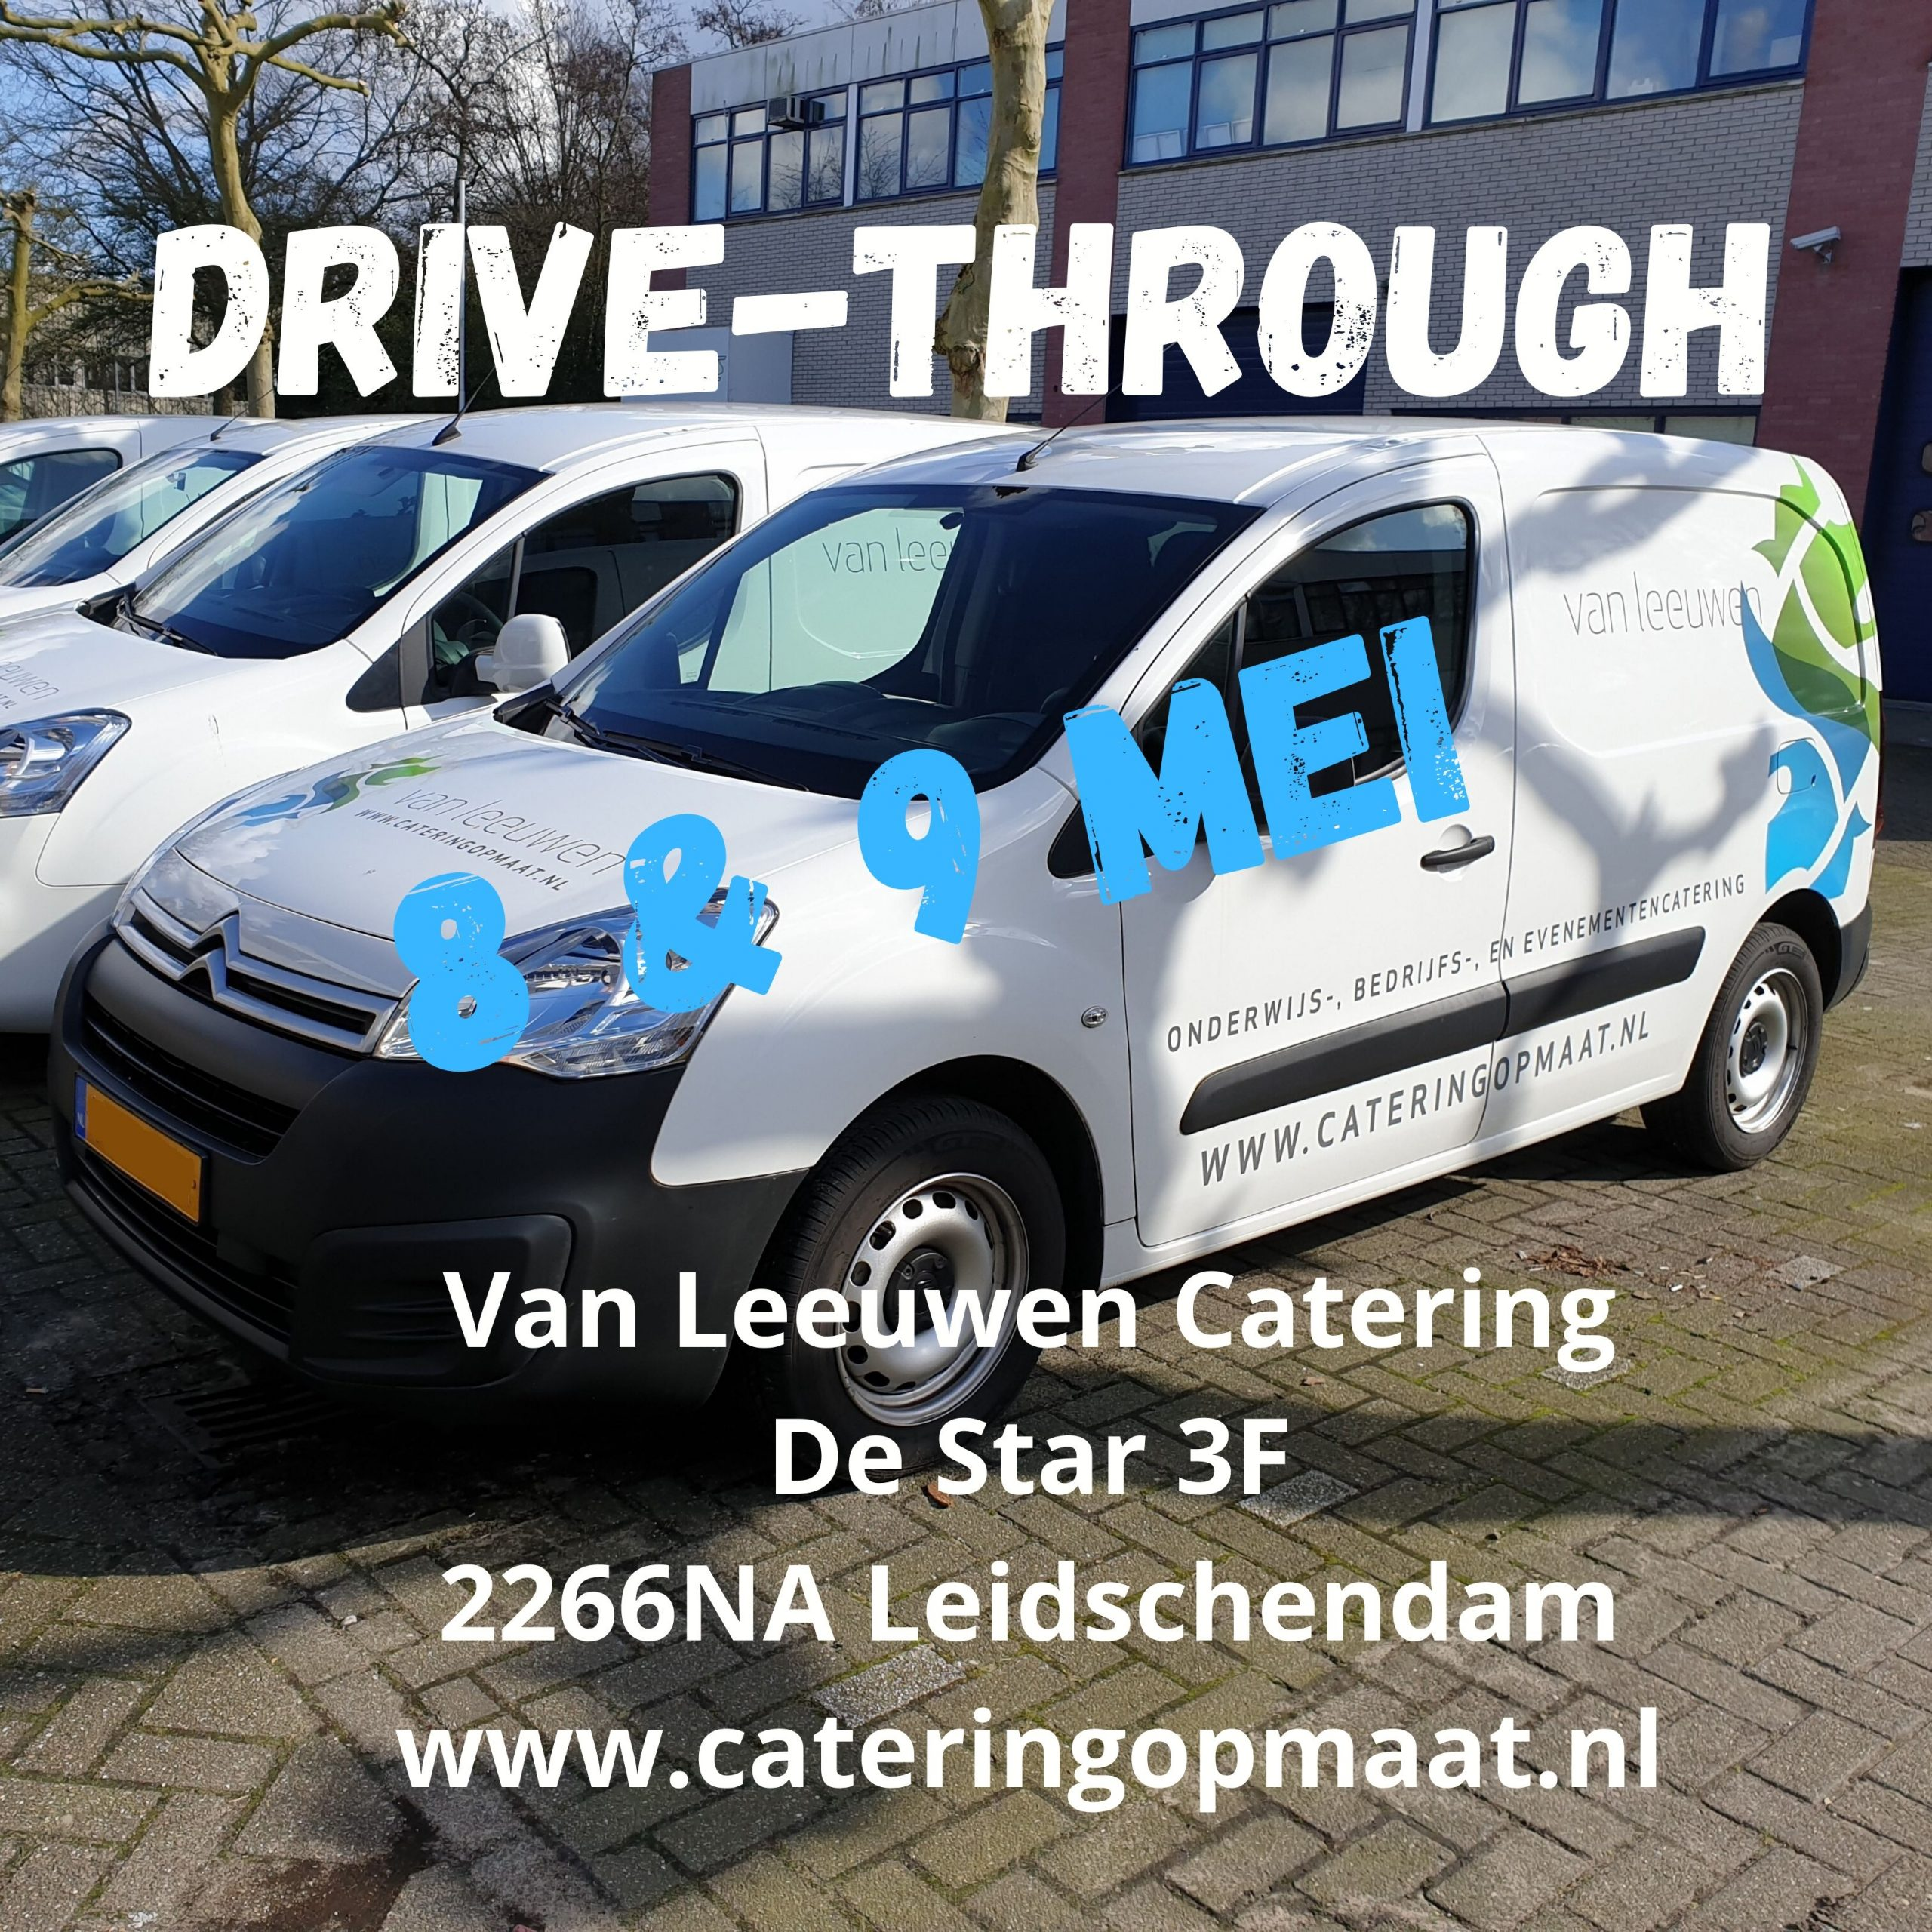 Drive through 8 en 9 mei 002 scaled - Van Leeuwen Catering organiseert drive-through